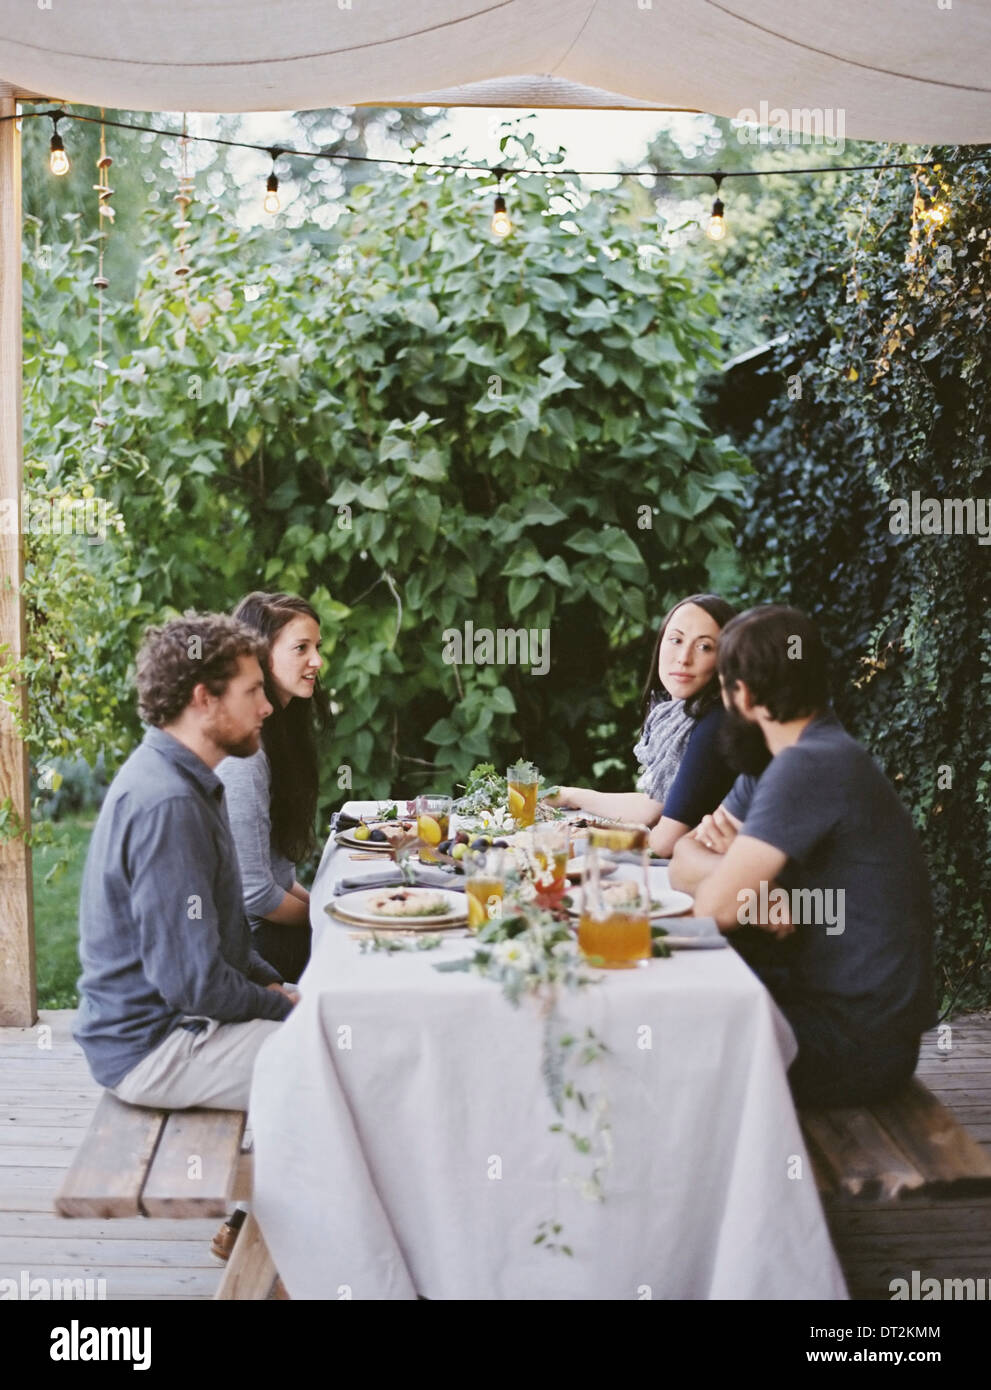 Four people seated at a table in the garden Place settings and decorations on a white tablecloth Two men and two - Stock Image